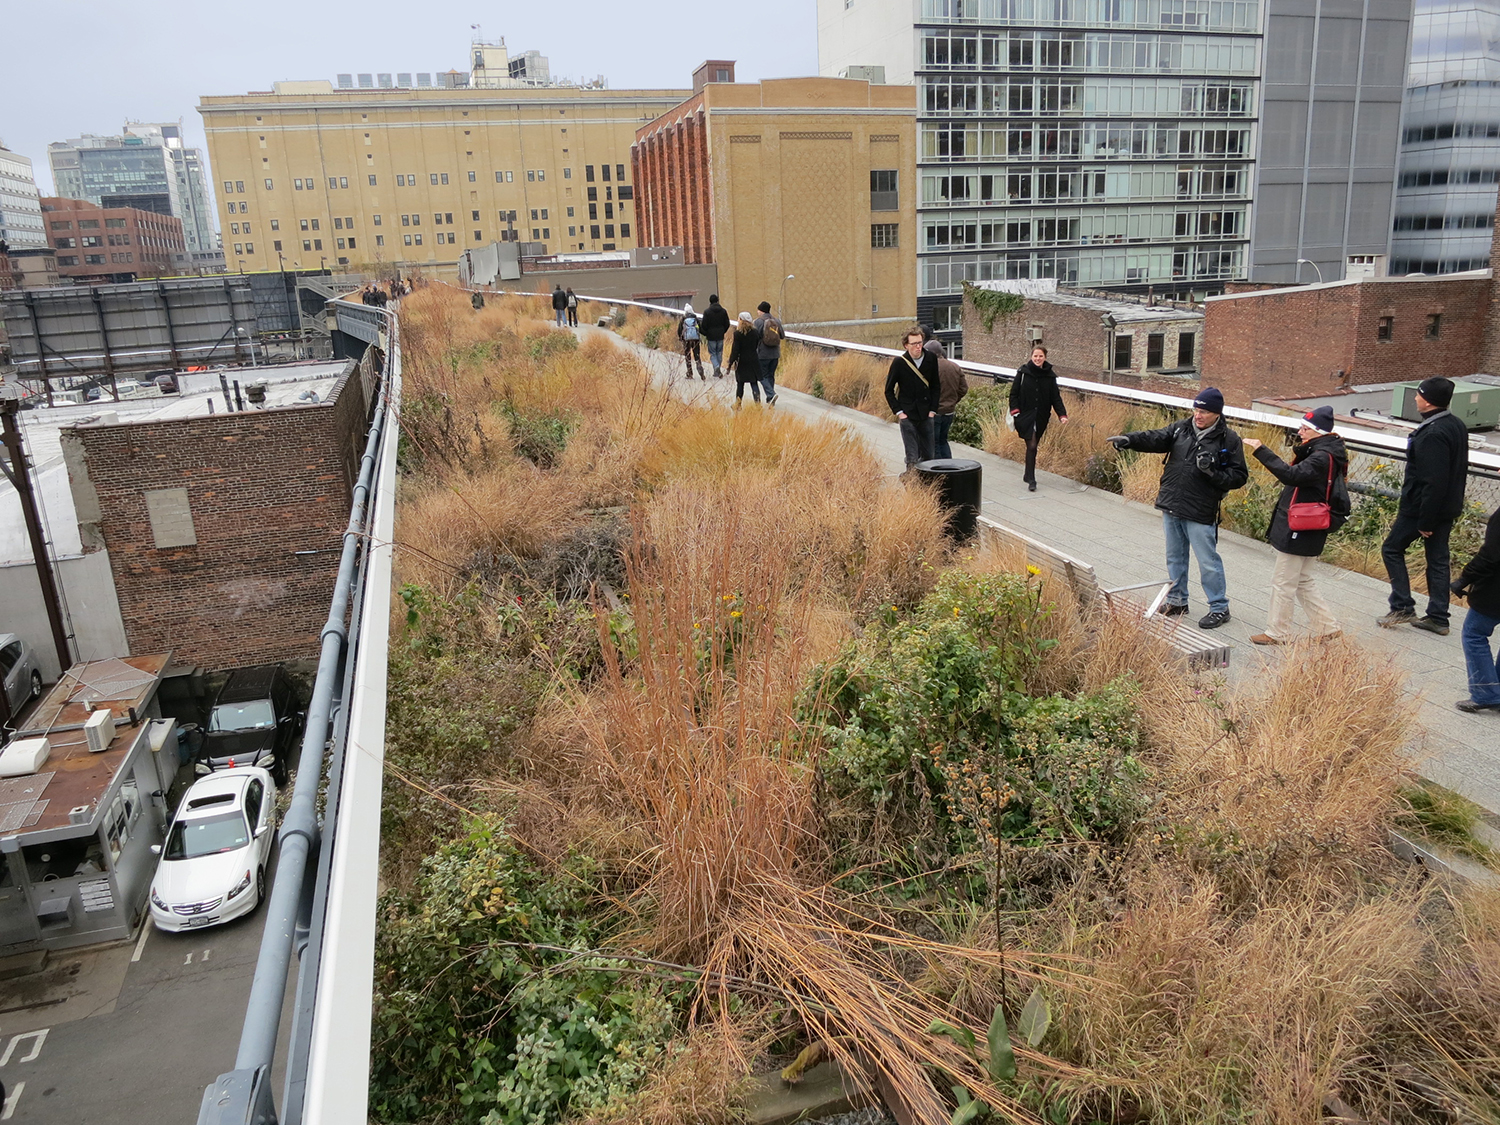 Elevated linear park, The High Line